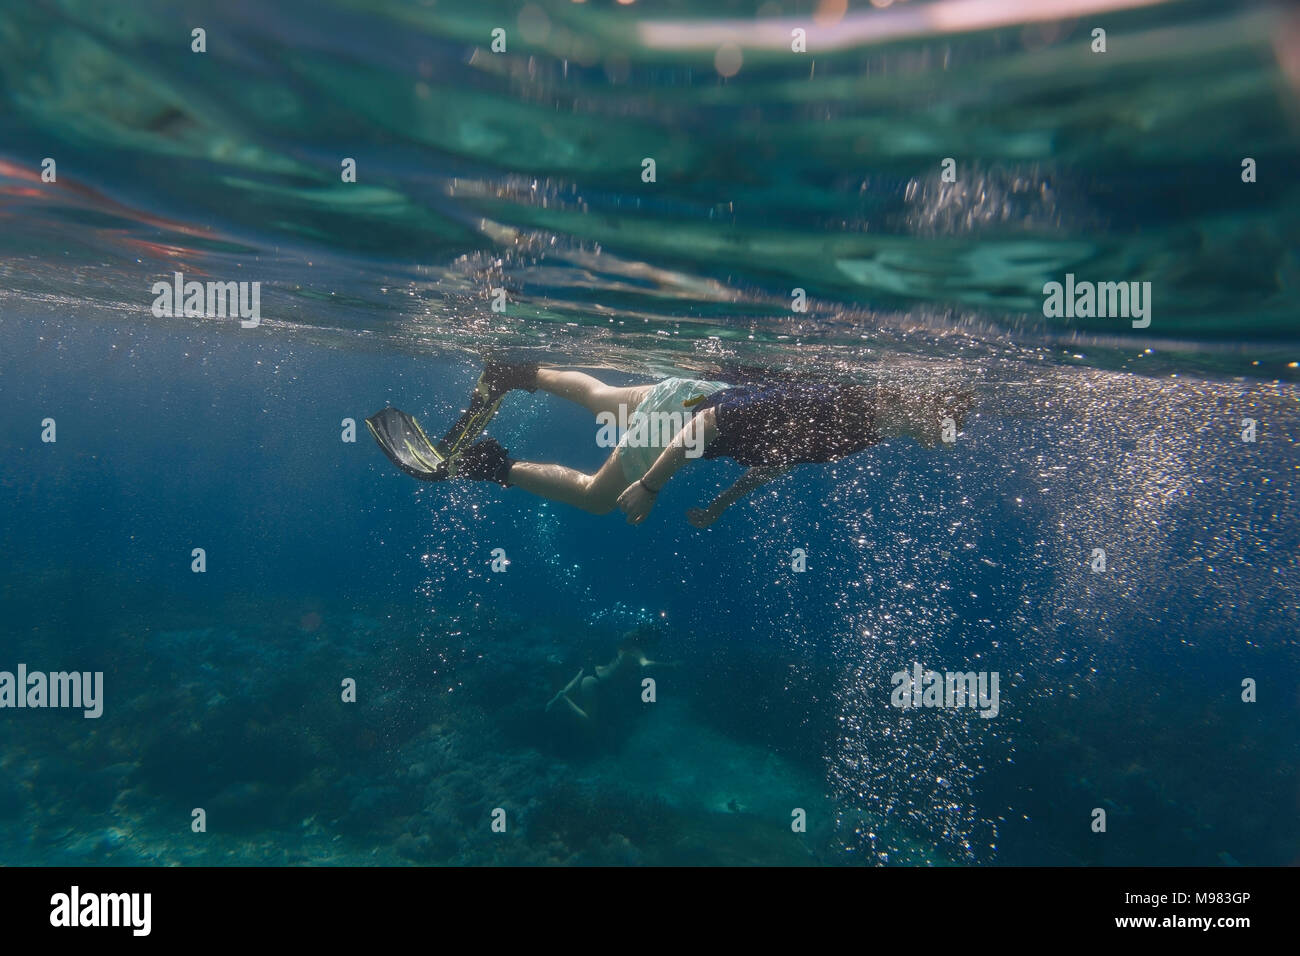 Underwater shot of man with fins and snorkeling - Stock Image